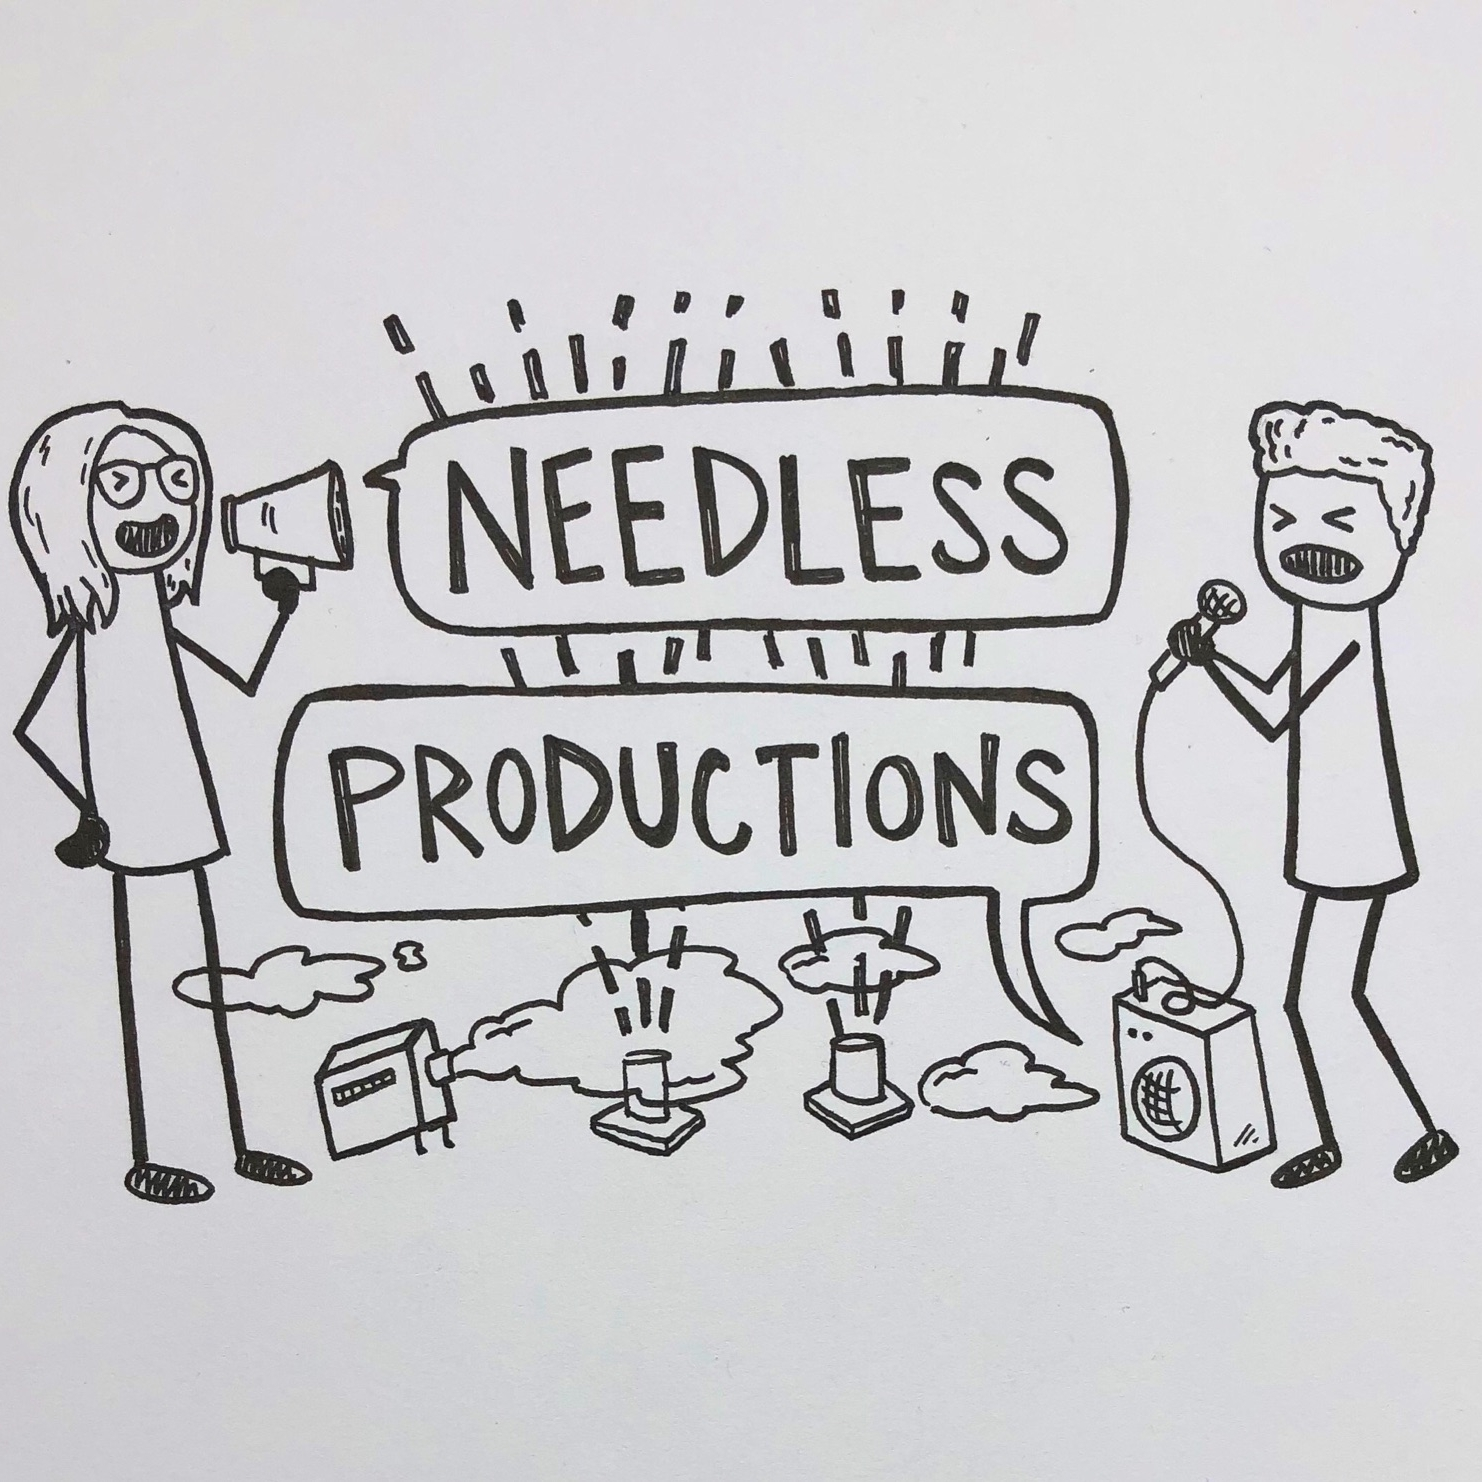 NeedlessProductions_logo2019.jpeg